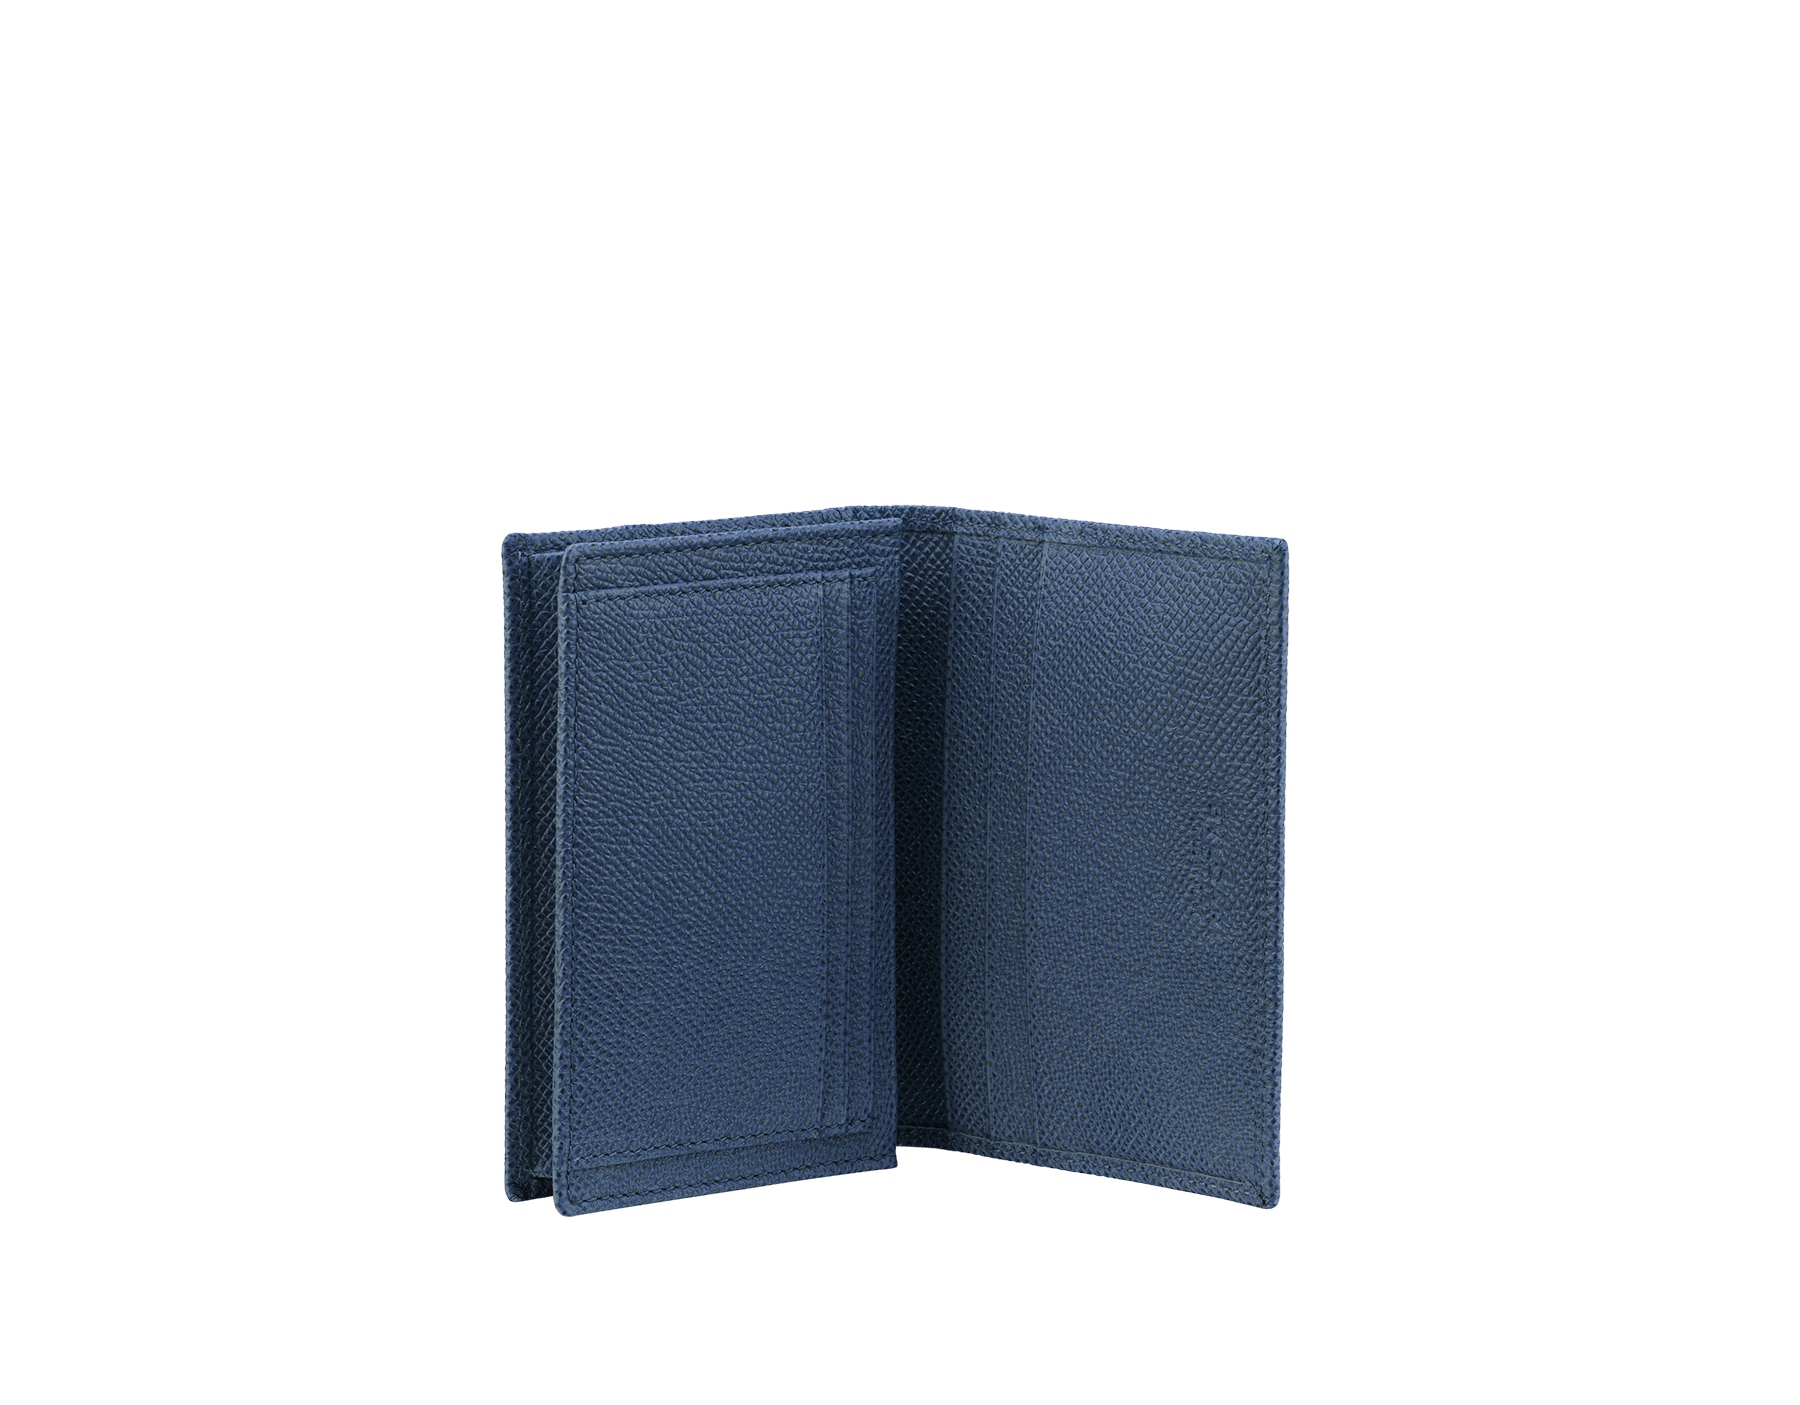 Business card holder in denim sapphire grain calf leather with brass palladium plated Bulgari Bulgari motif. Three credit card slots, one open pocket and business cards compartment. 280299 image 2